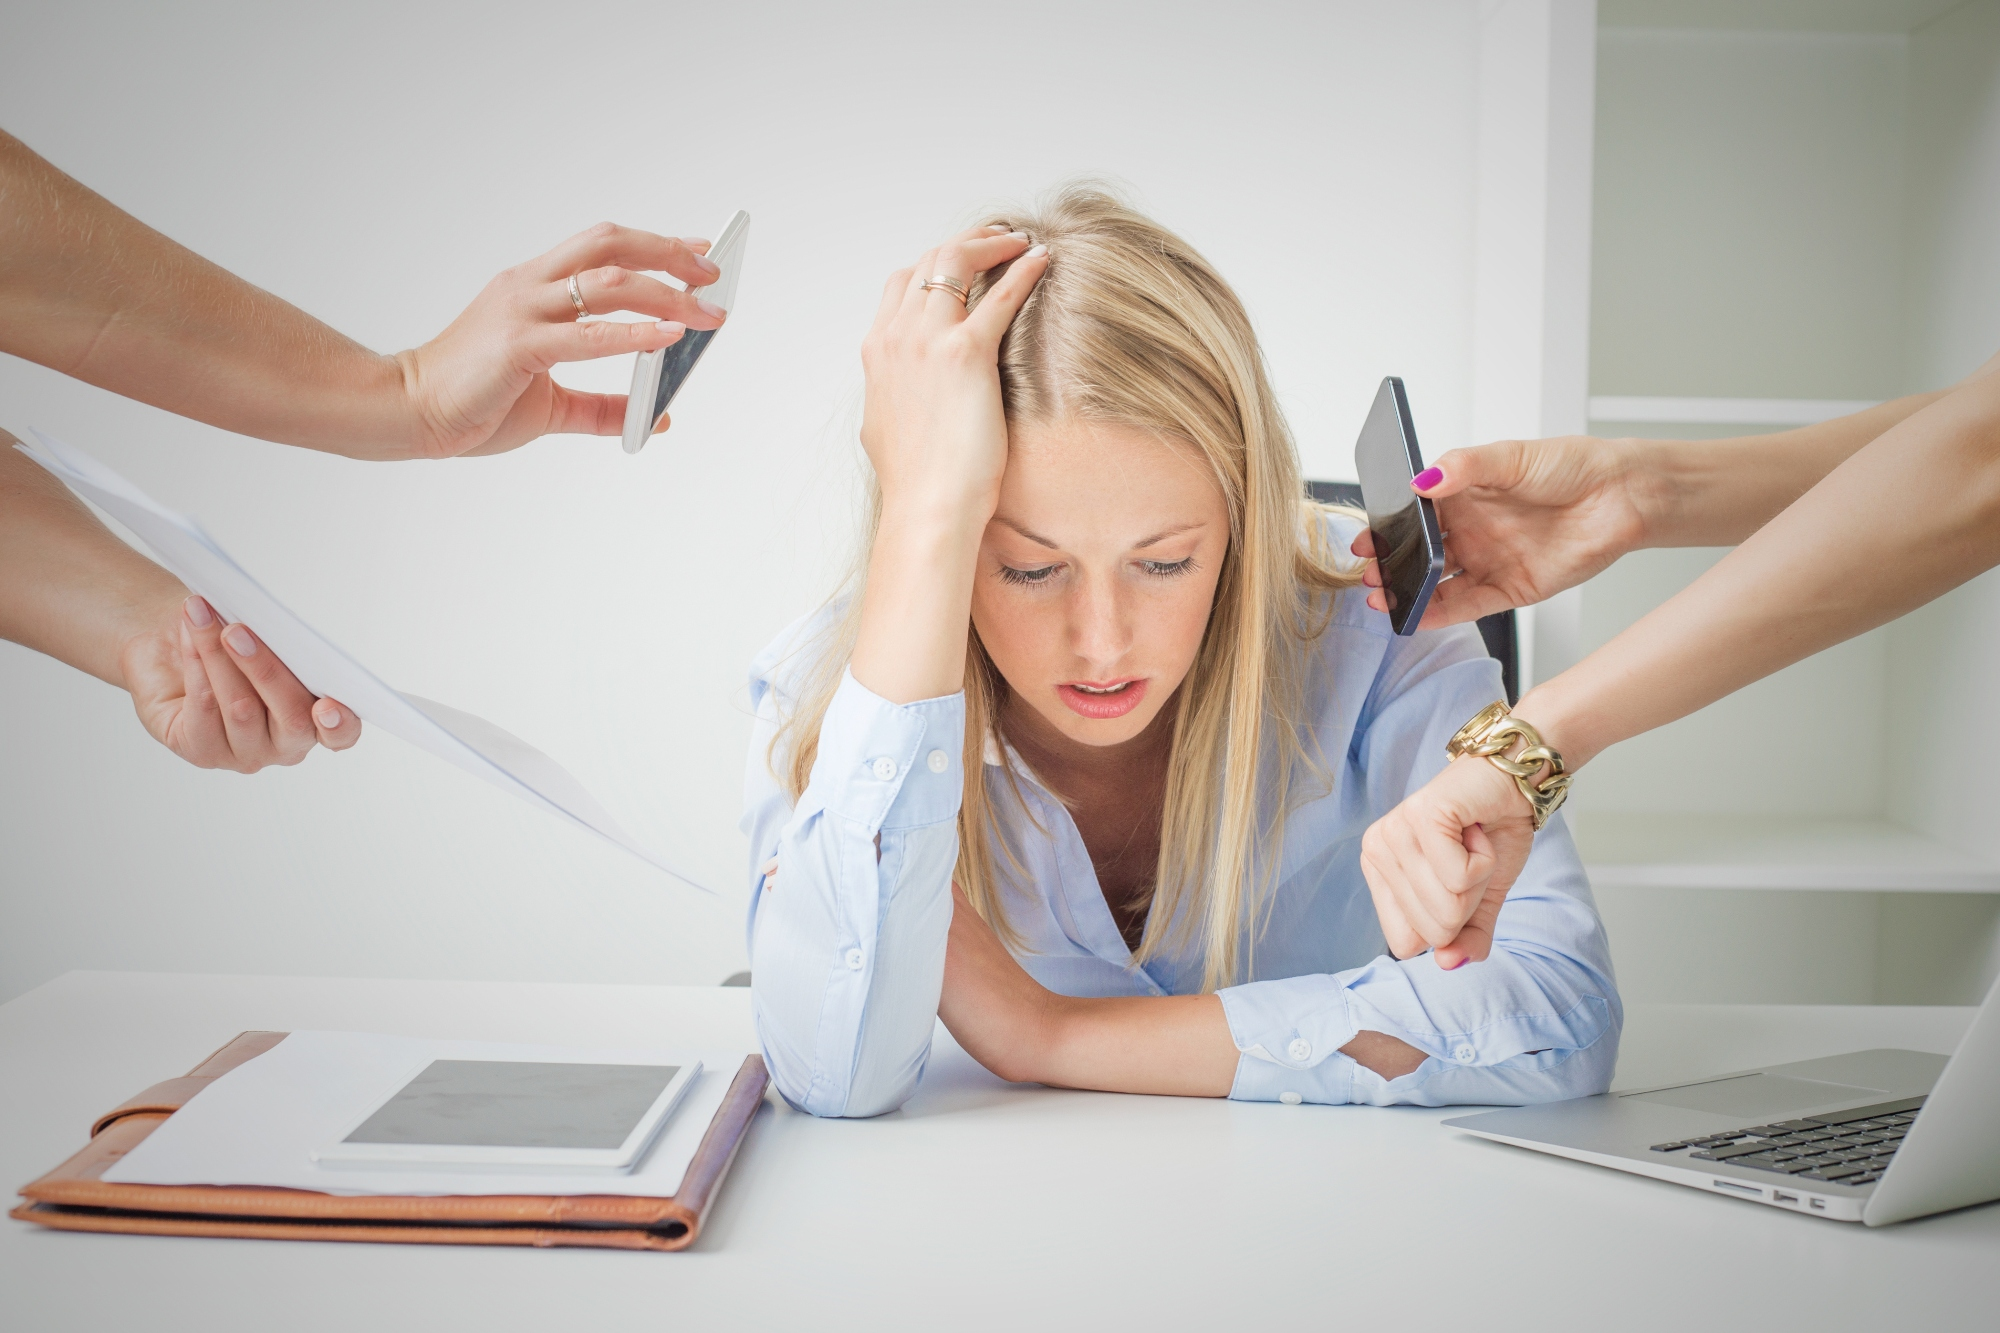 Woman stressed and overworked